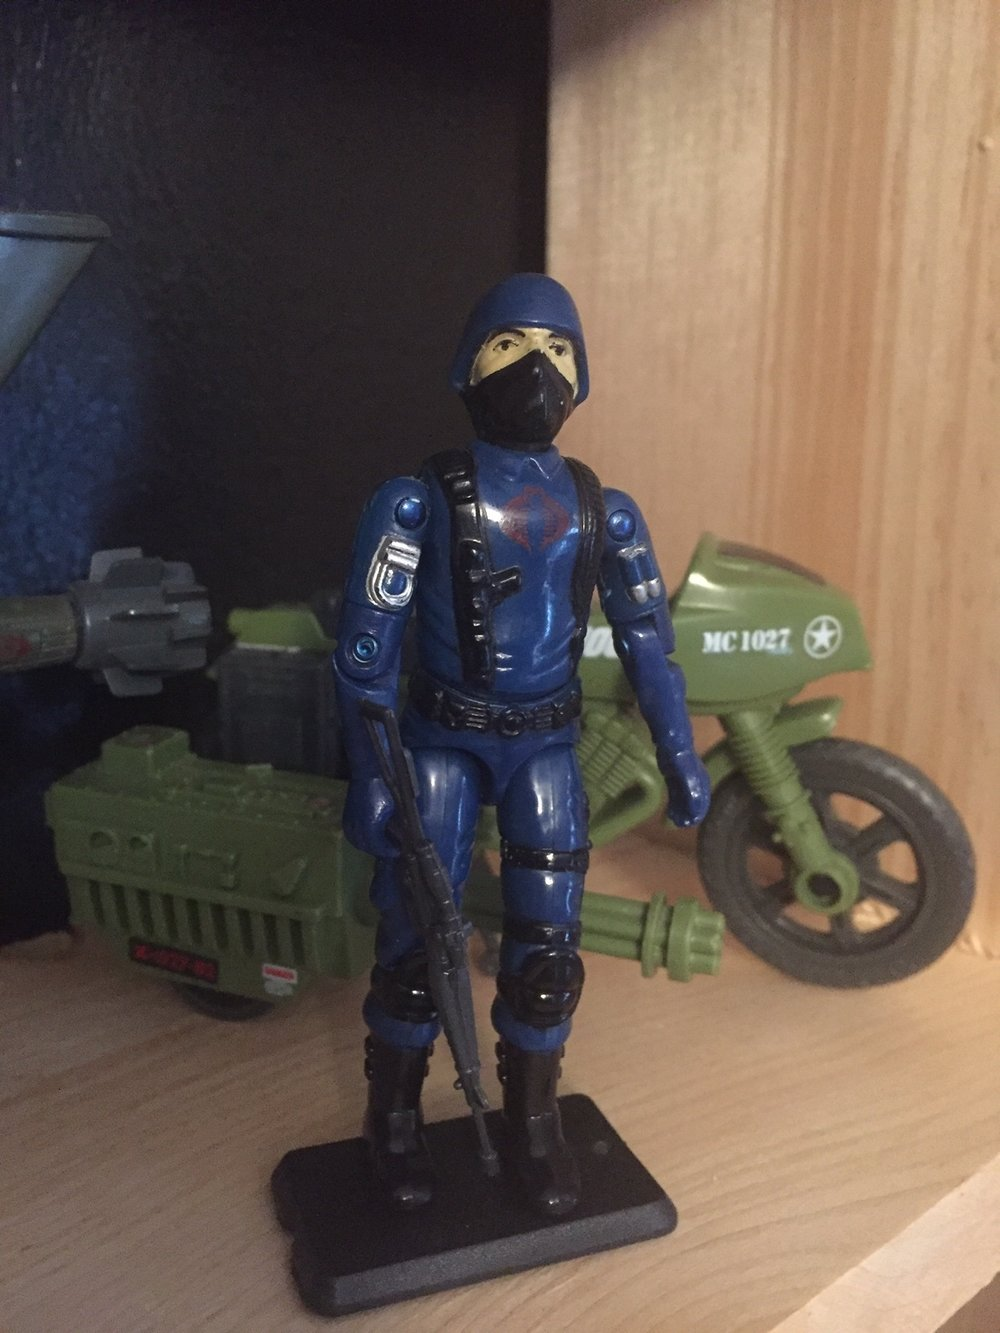 G.I. Joe Cobra The Enemy (1983) (Swivel Arm Battle Grip) from the when it was cool collection with RAM Motorcycle in the background.